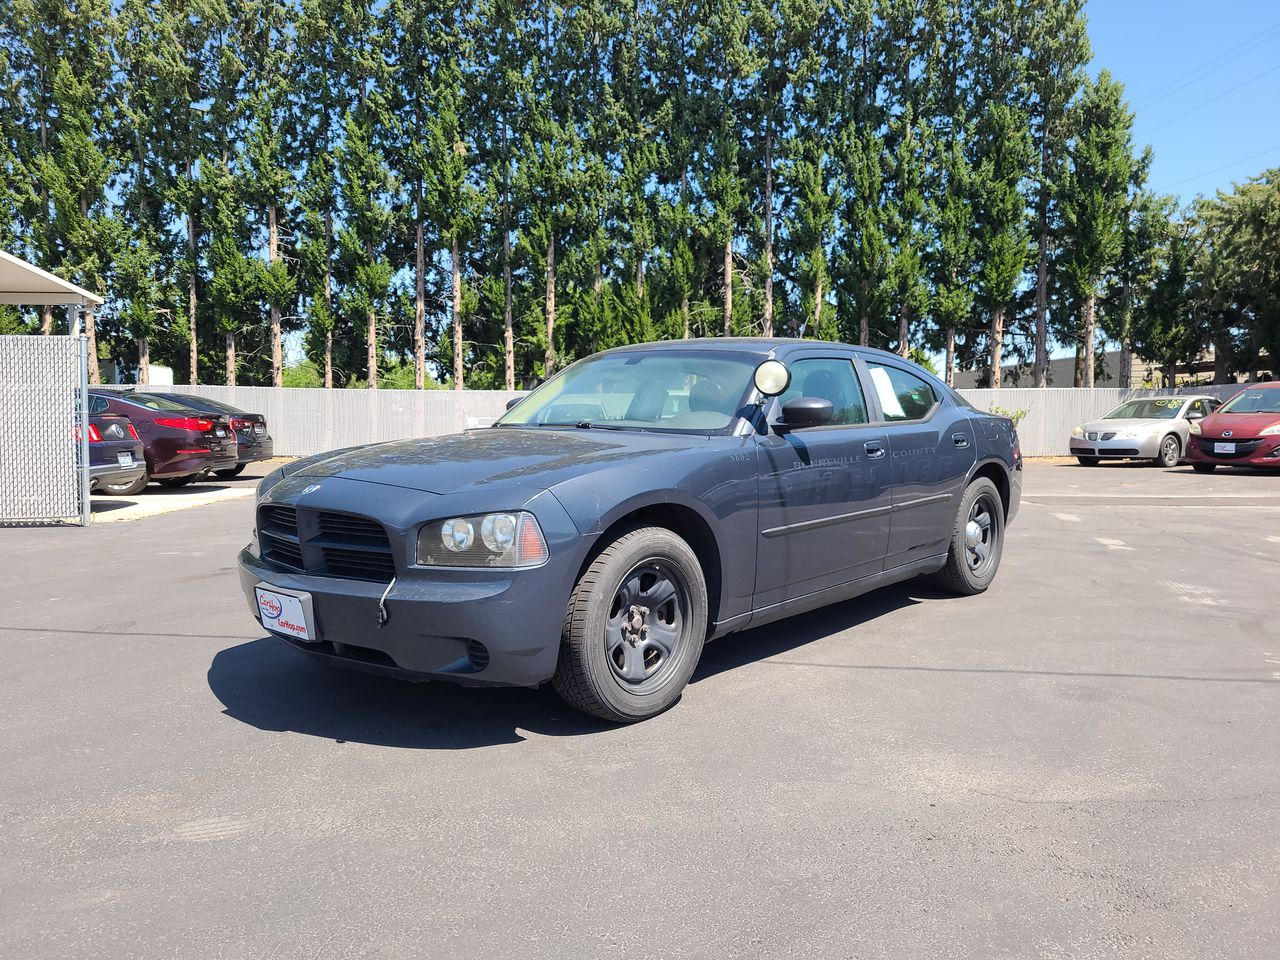 Pre-Owned 2008 DODGE CHARGER Sedan 4D